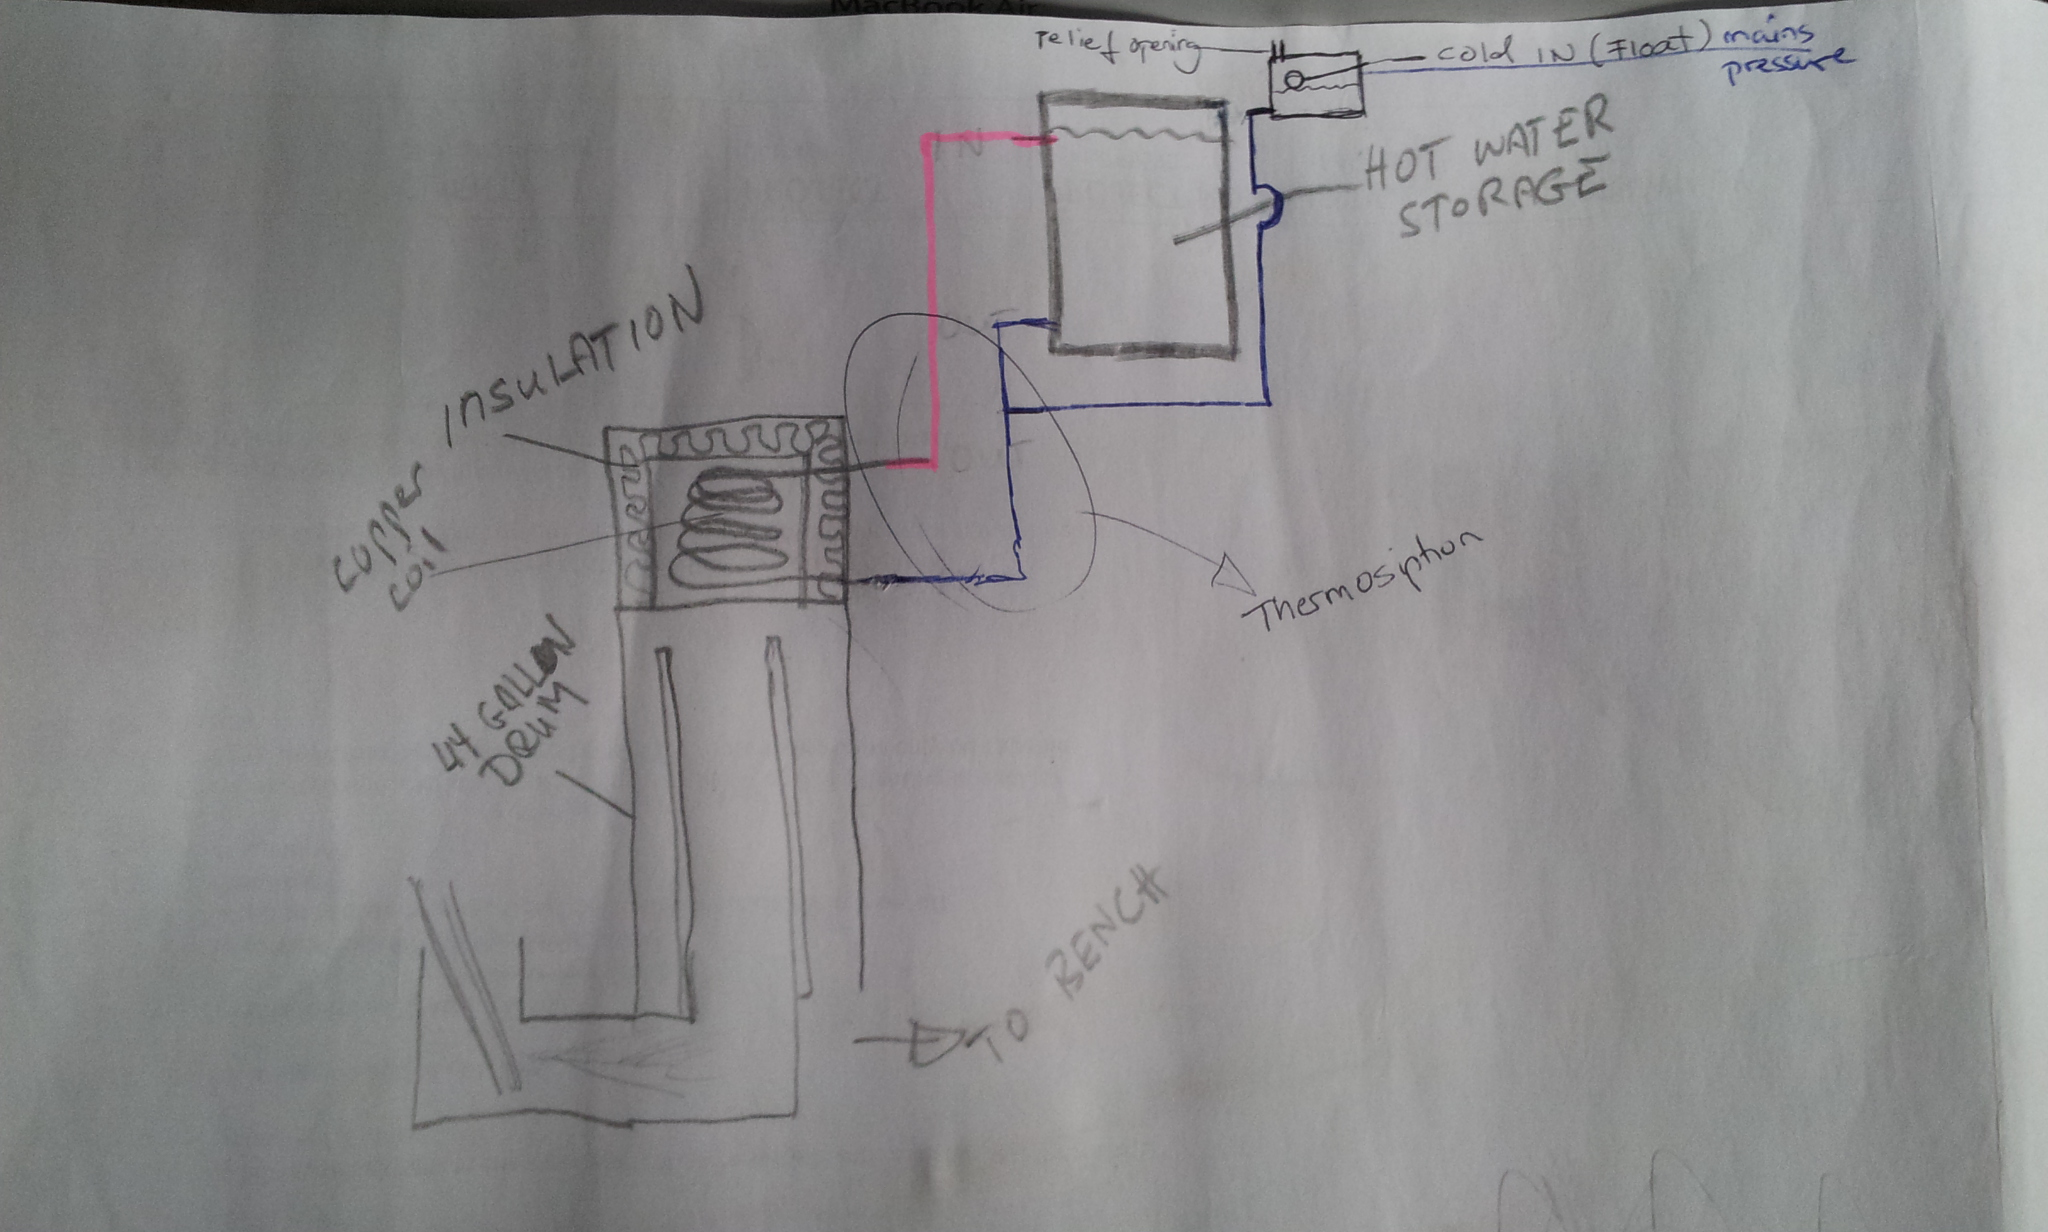 3 different rocket stove water heater designs, input requested ...